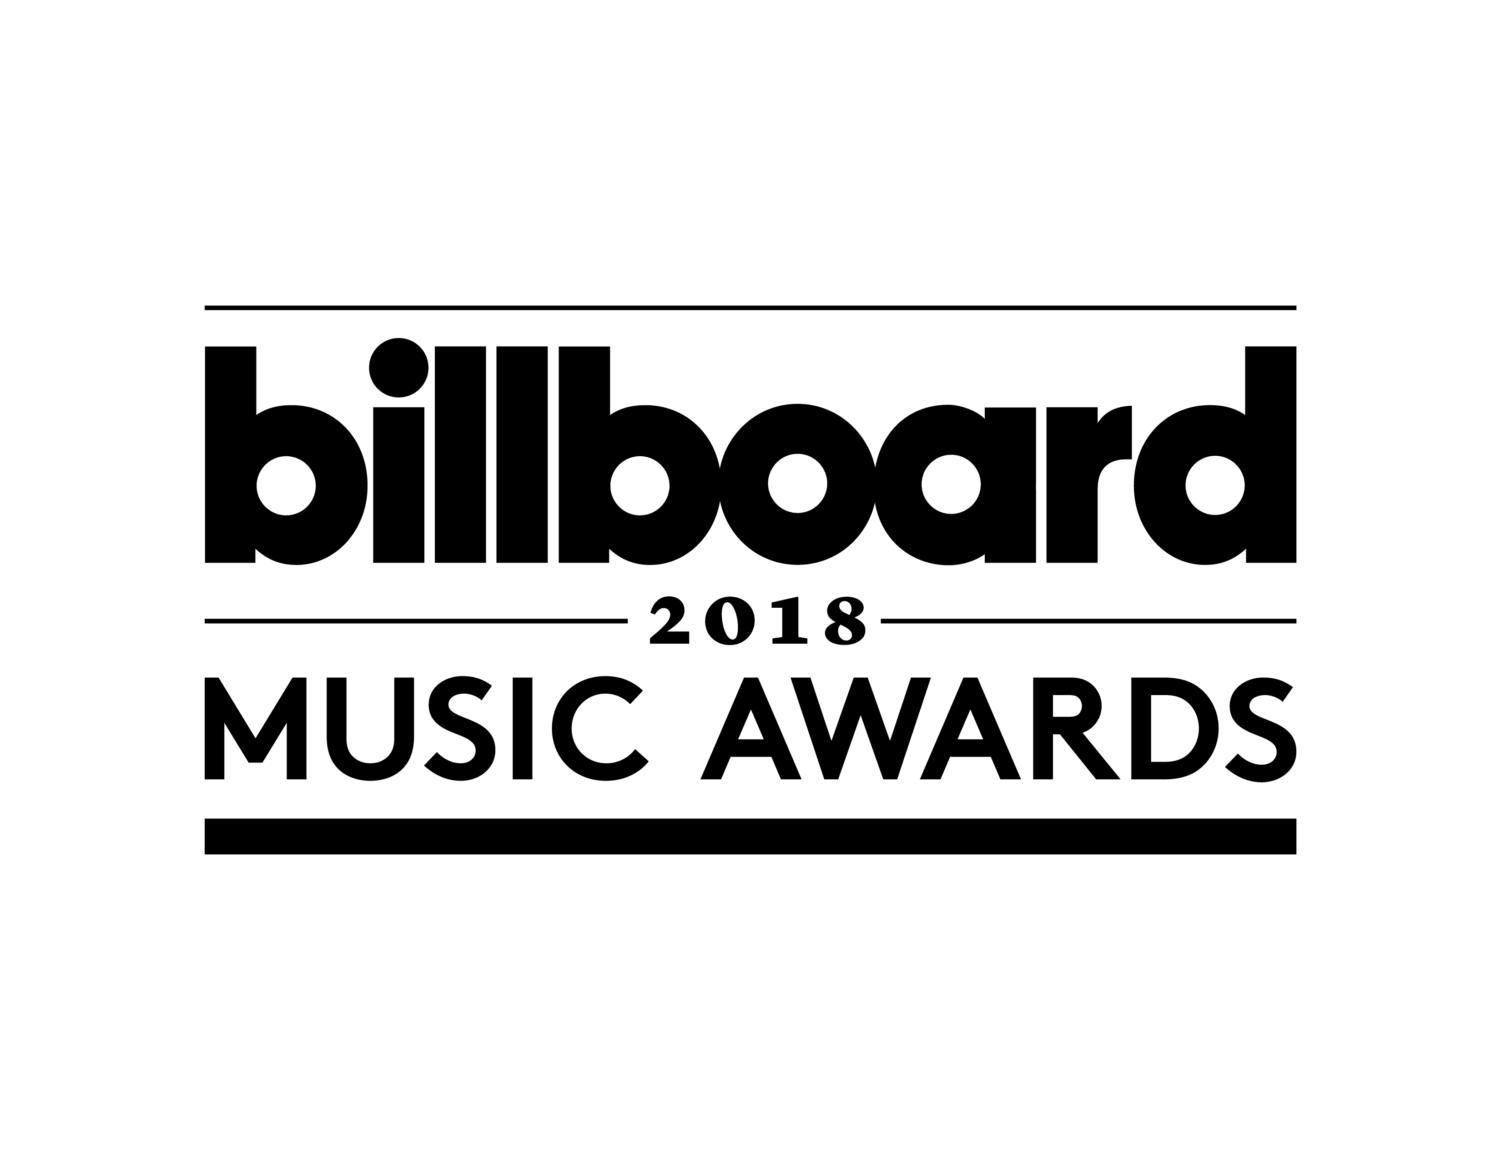 On May 20, the 2018 Billboard Music Awards is scheduled to air on NBC, 7 P.M. CT